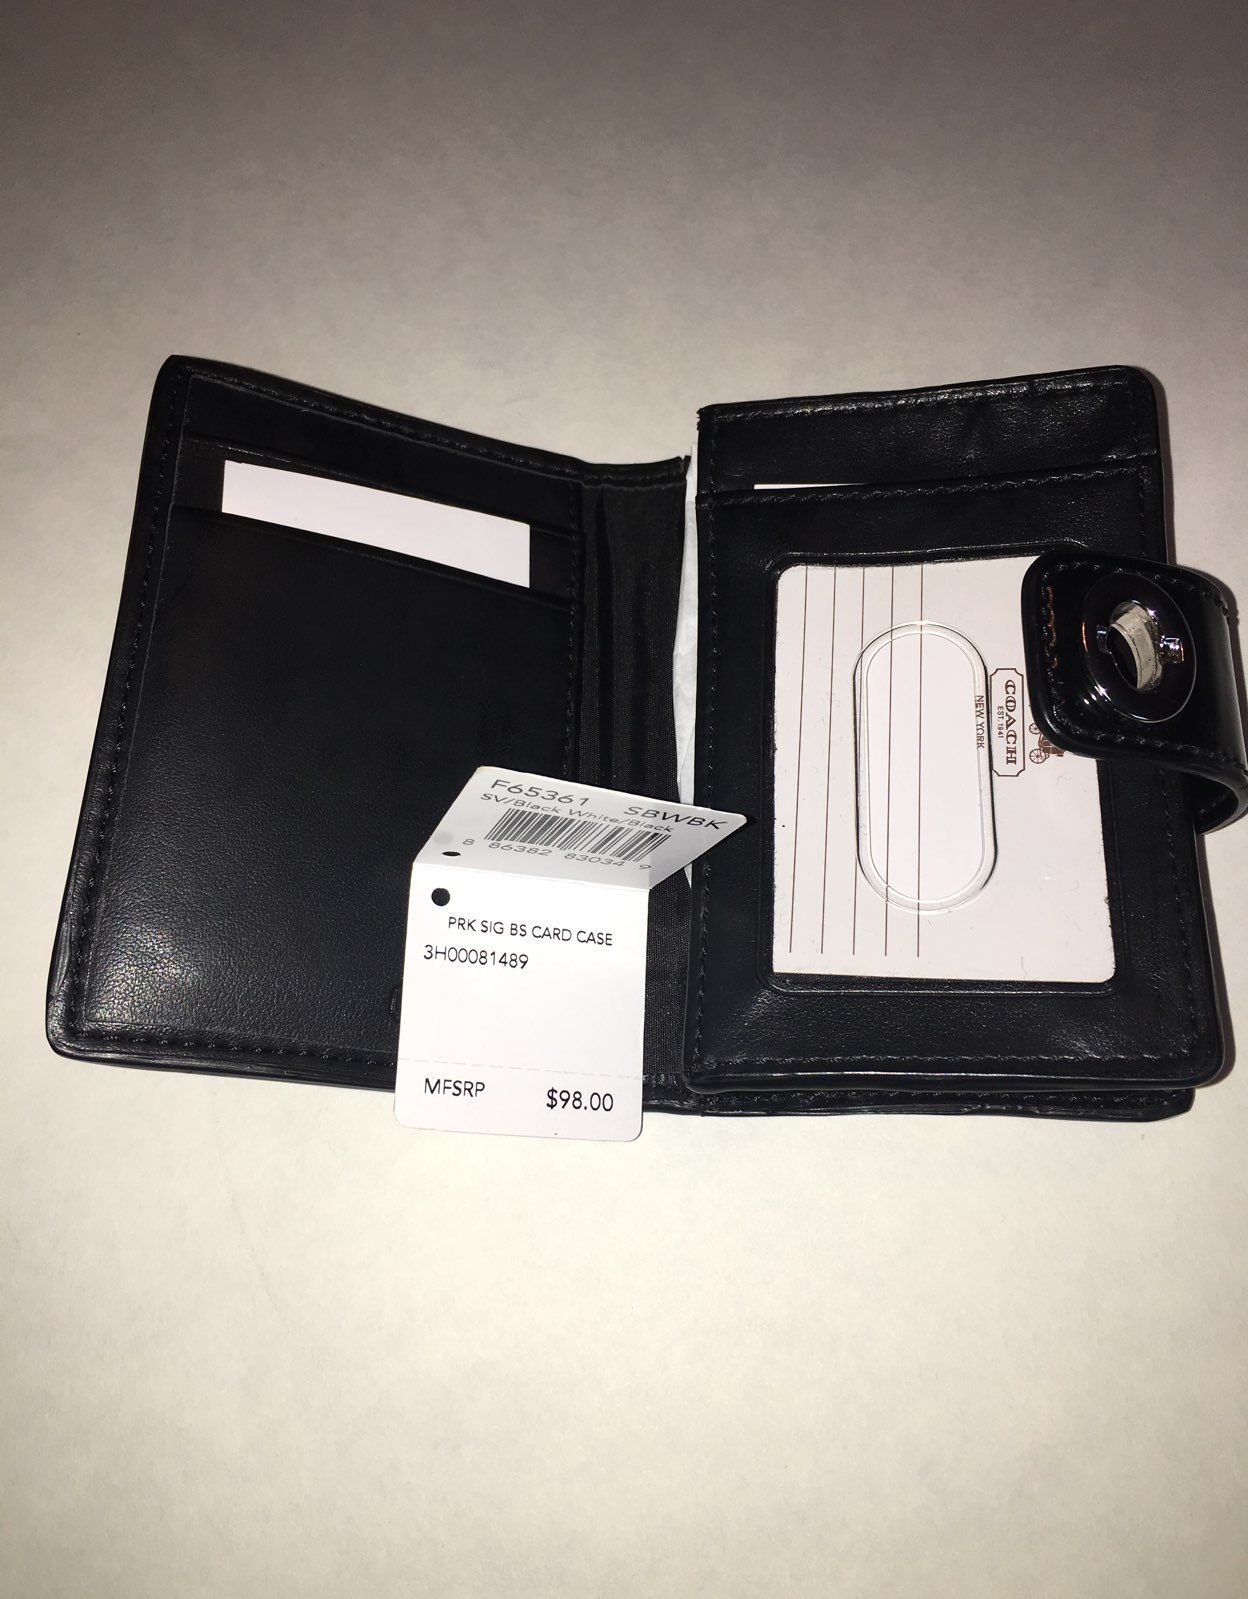 Coach Business Card Case!! - Mercari: The Selling App